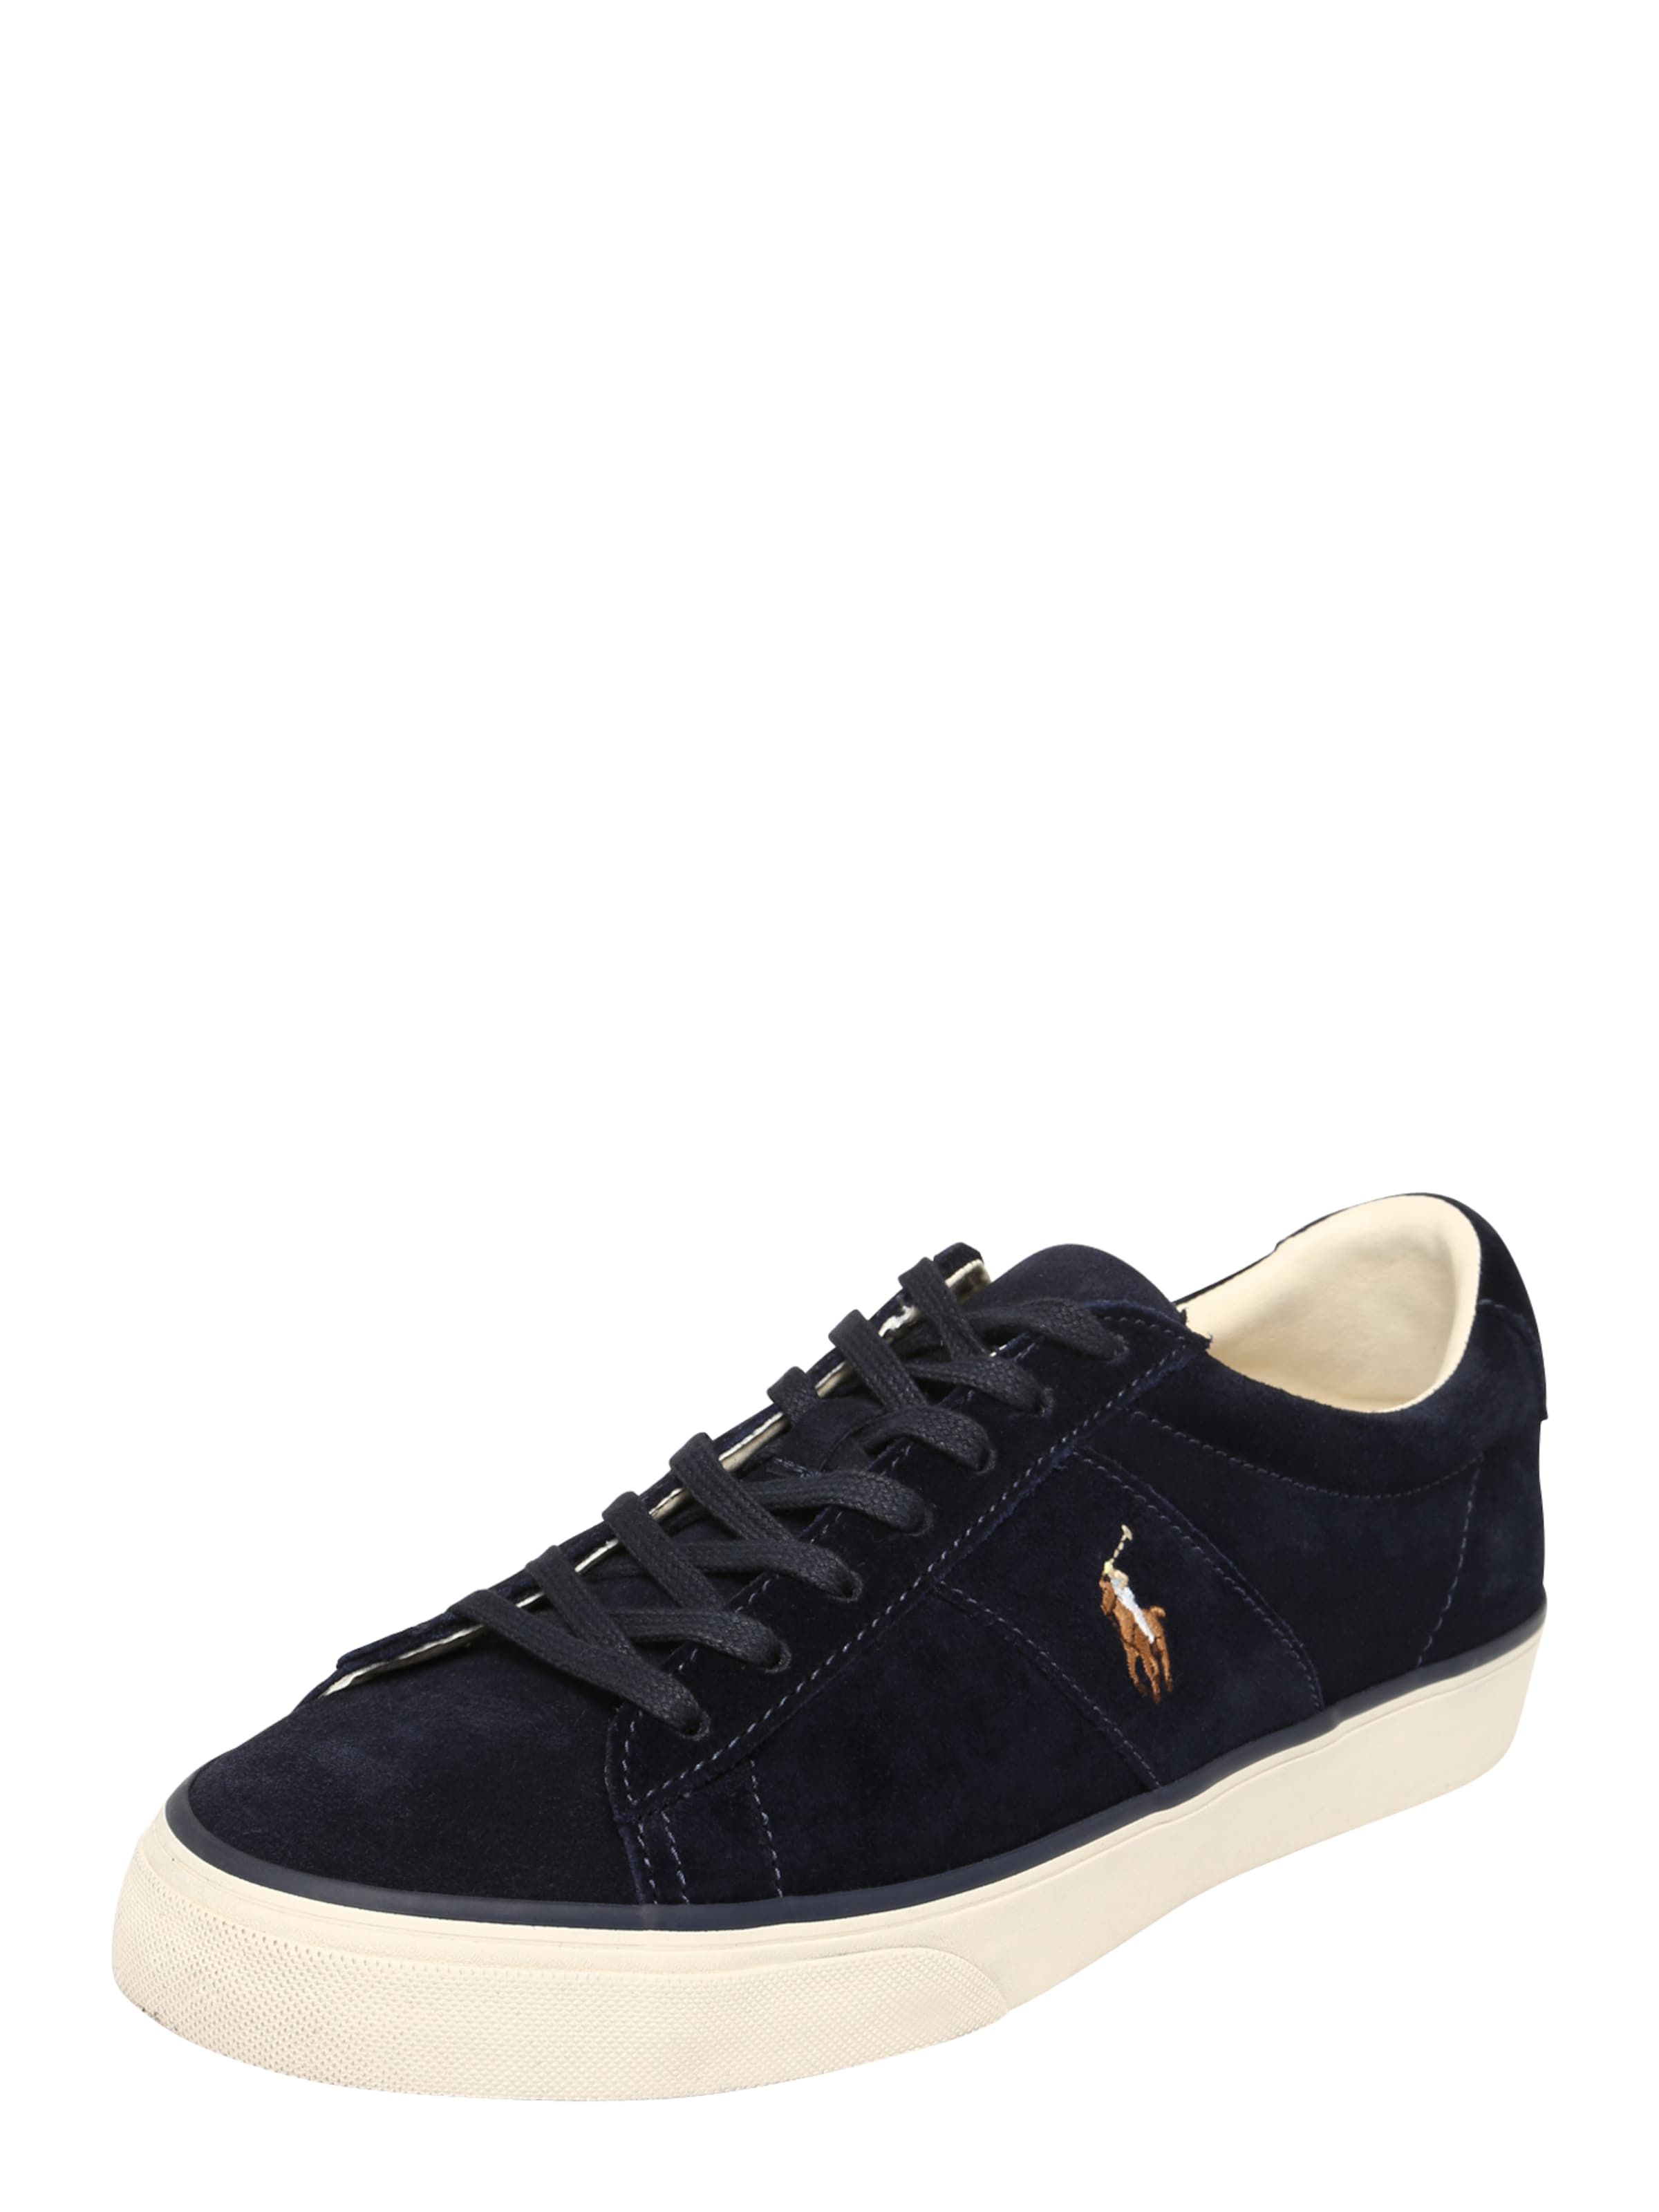 Ralph Navy Lauren Sneaker Polo 'sayer' In srQCxBthd